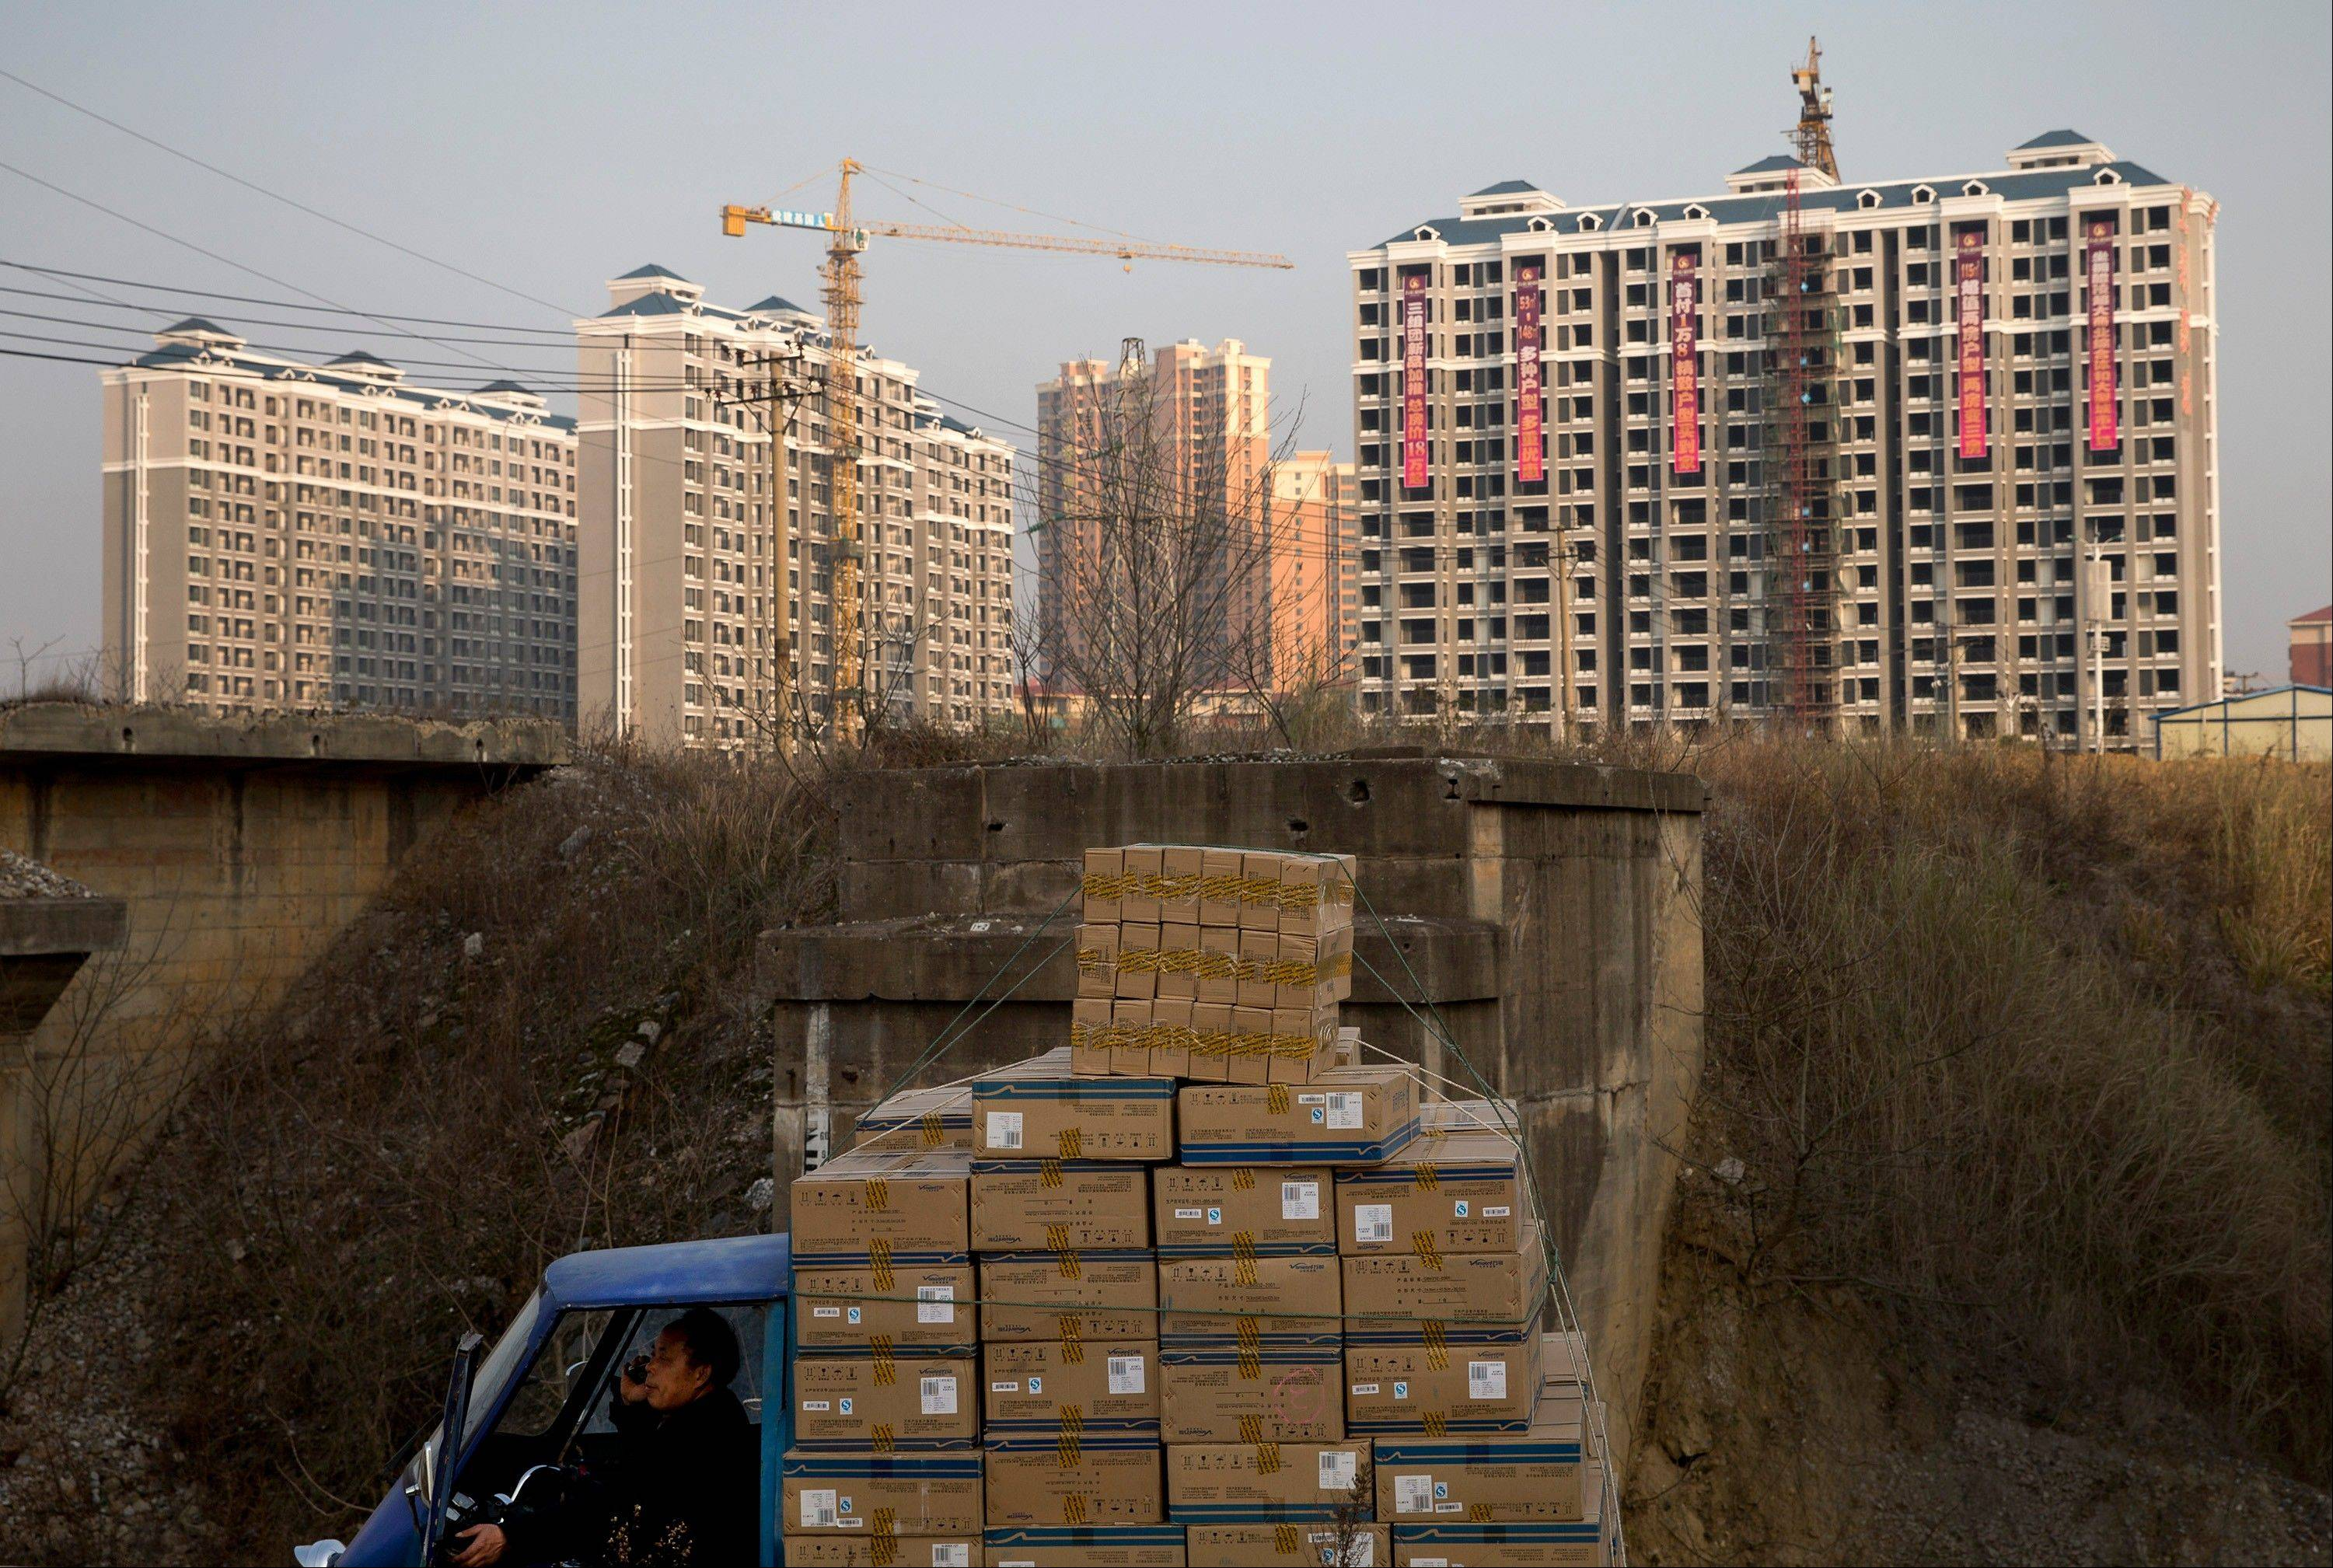 A man talks on a mobile phone inside his tricycle cart loaded with goods near under-construction residential buildings in Changsha, in China�s Hunan province. U.S. investors are being hit with new worries from overseas just as the economy at home appears to be strengthening.